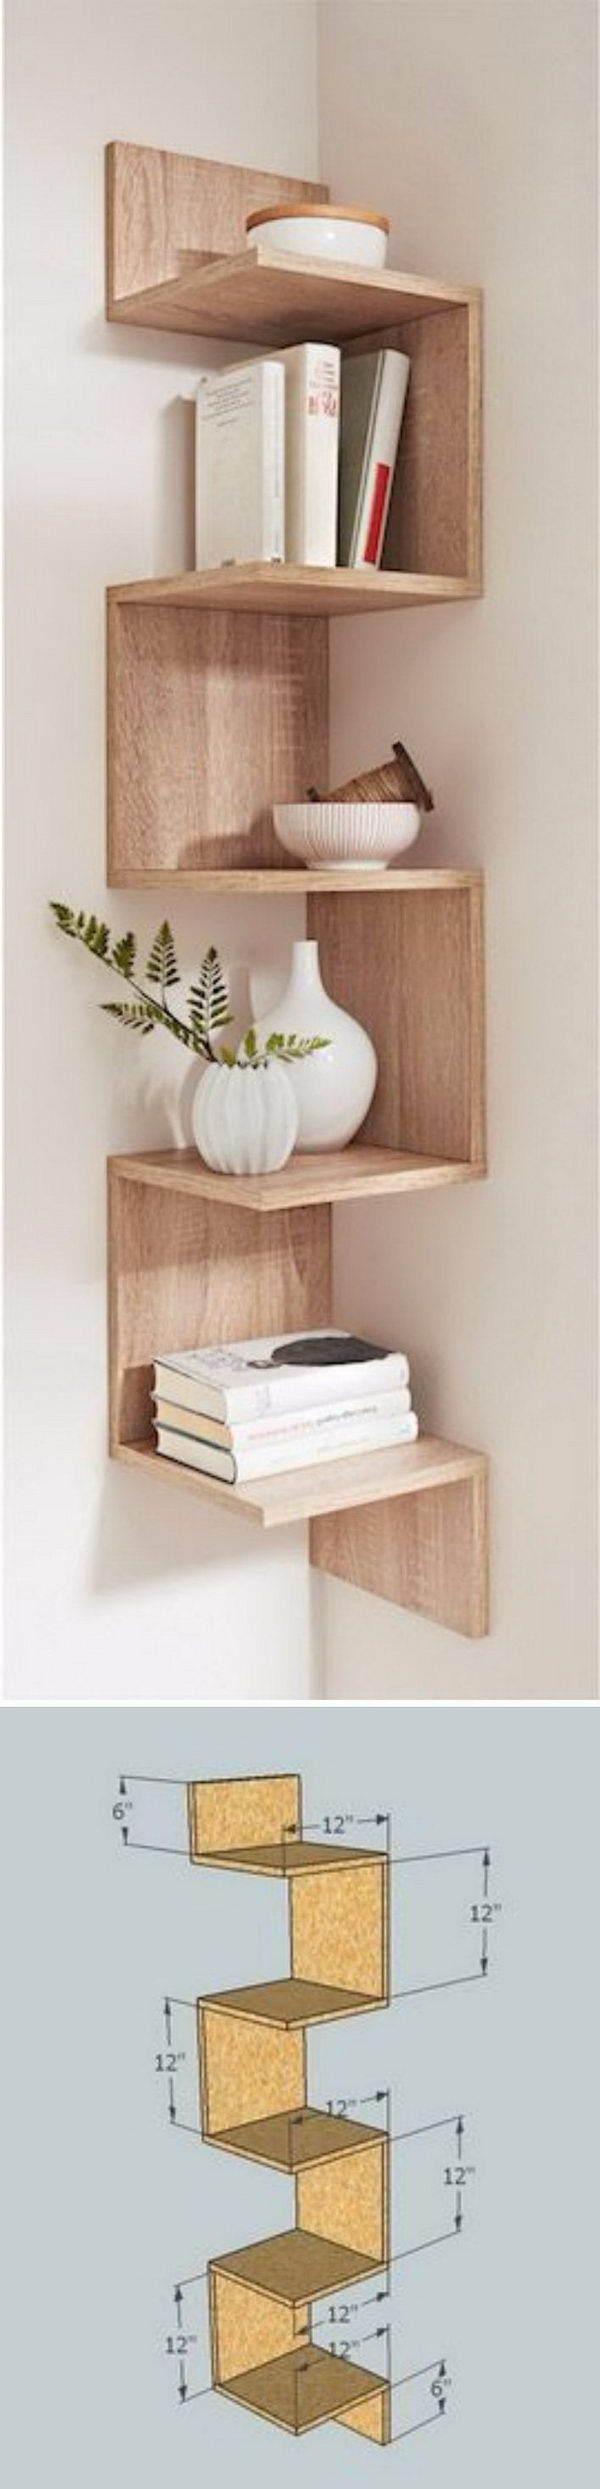 Eckregal Wohnzimmer Corner Shelf Tips In Huis Pinterest Eckregal Regal En